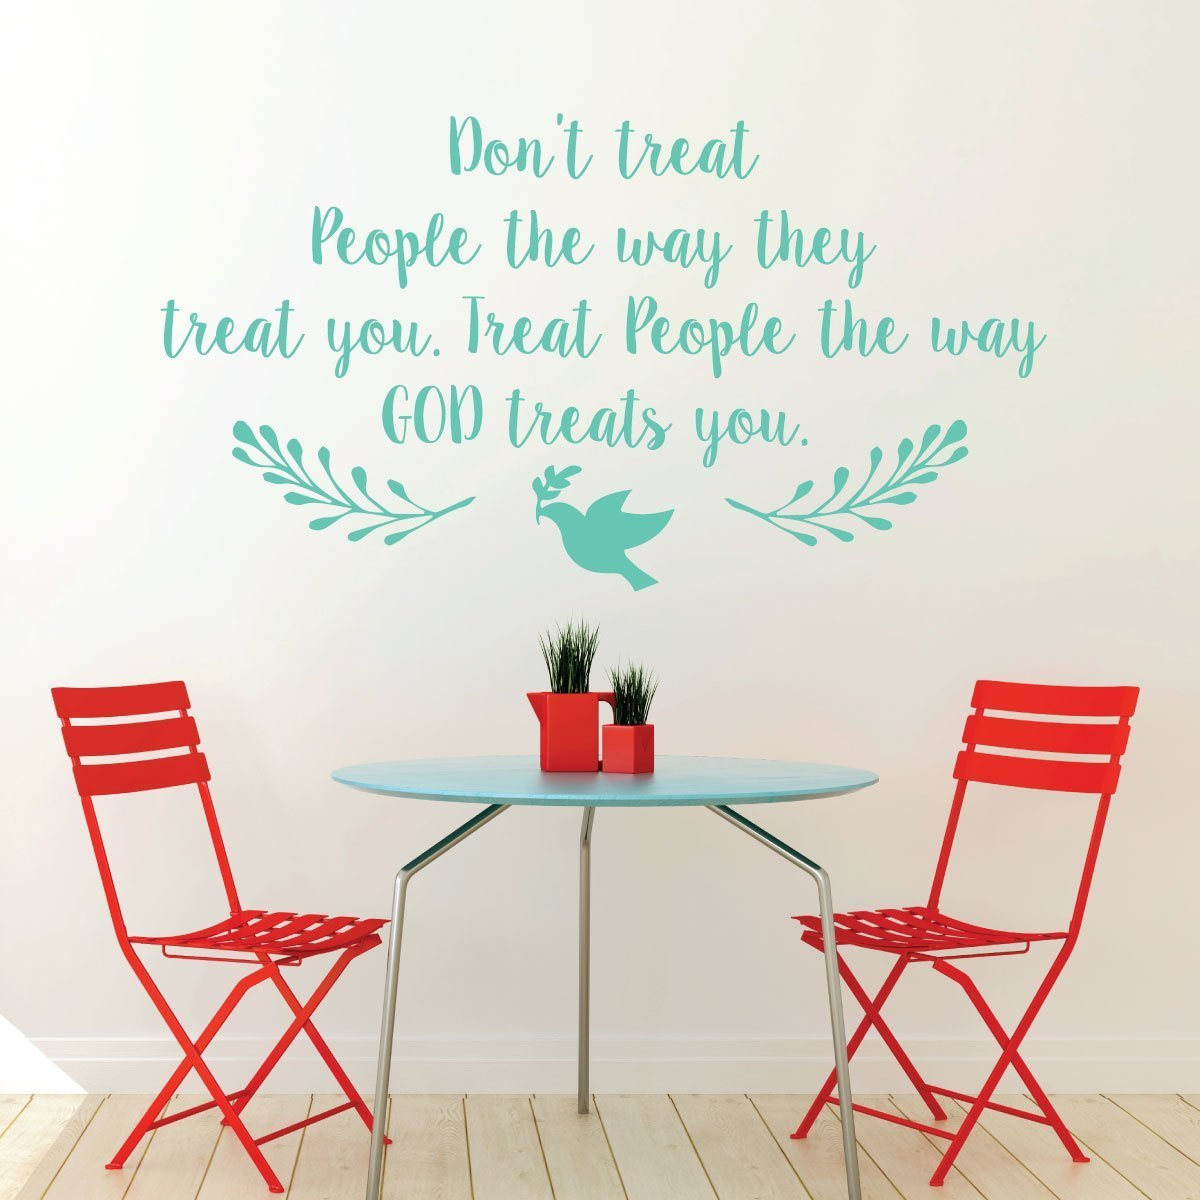 Christian Wall Decal   Donu0027t Treat People The Way They Treat You. Treat